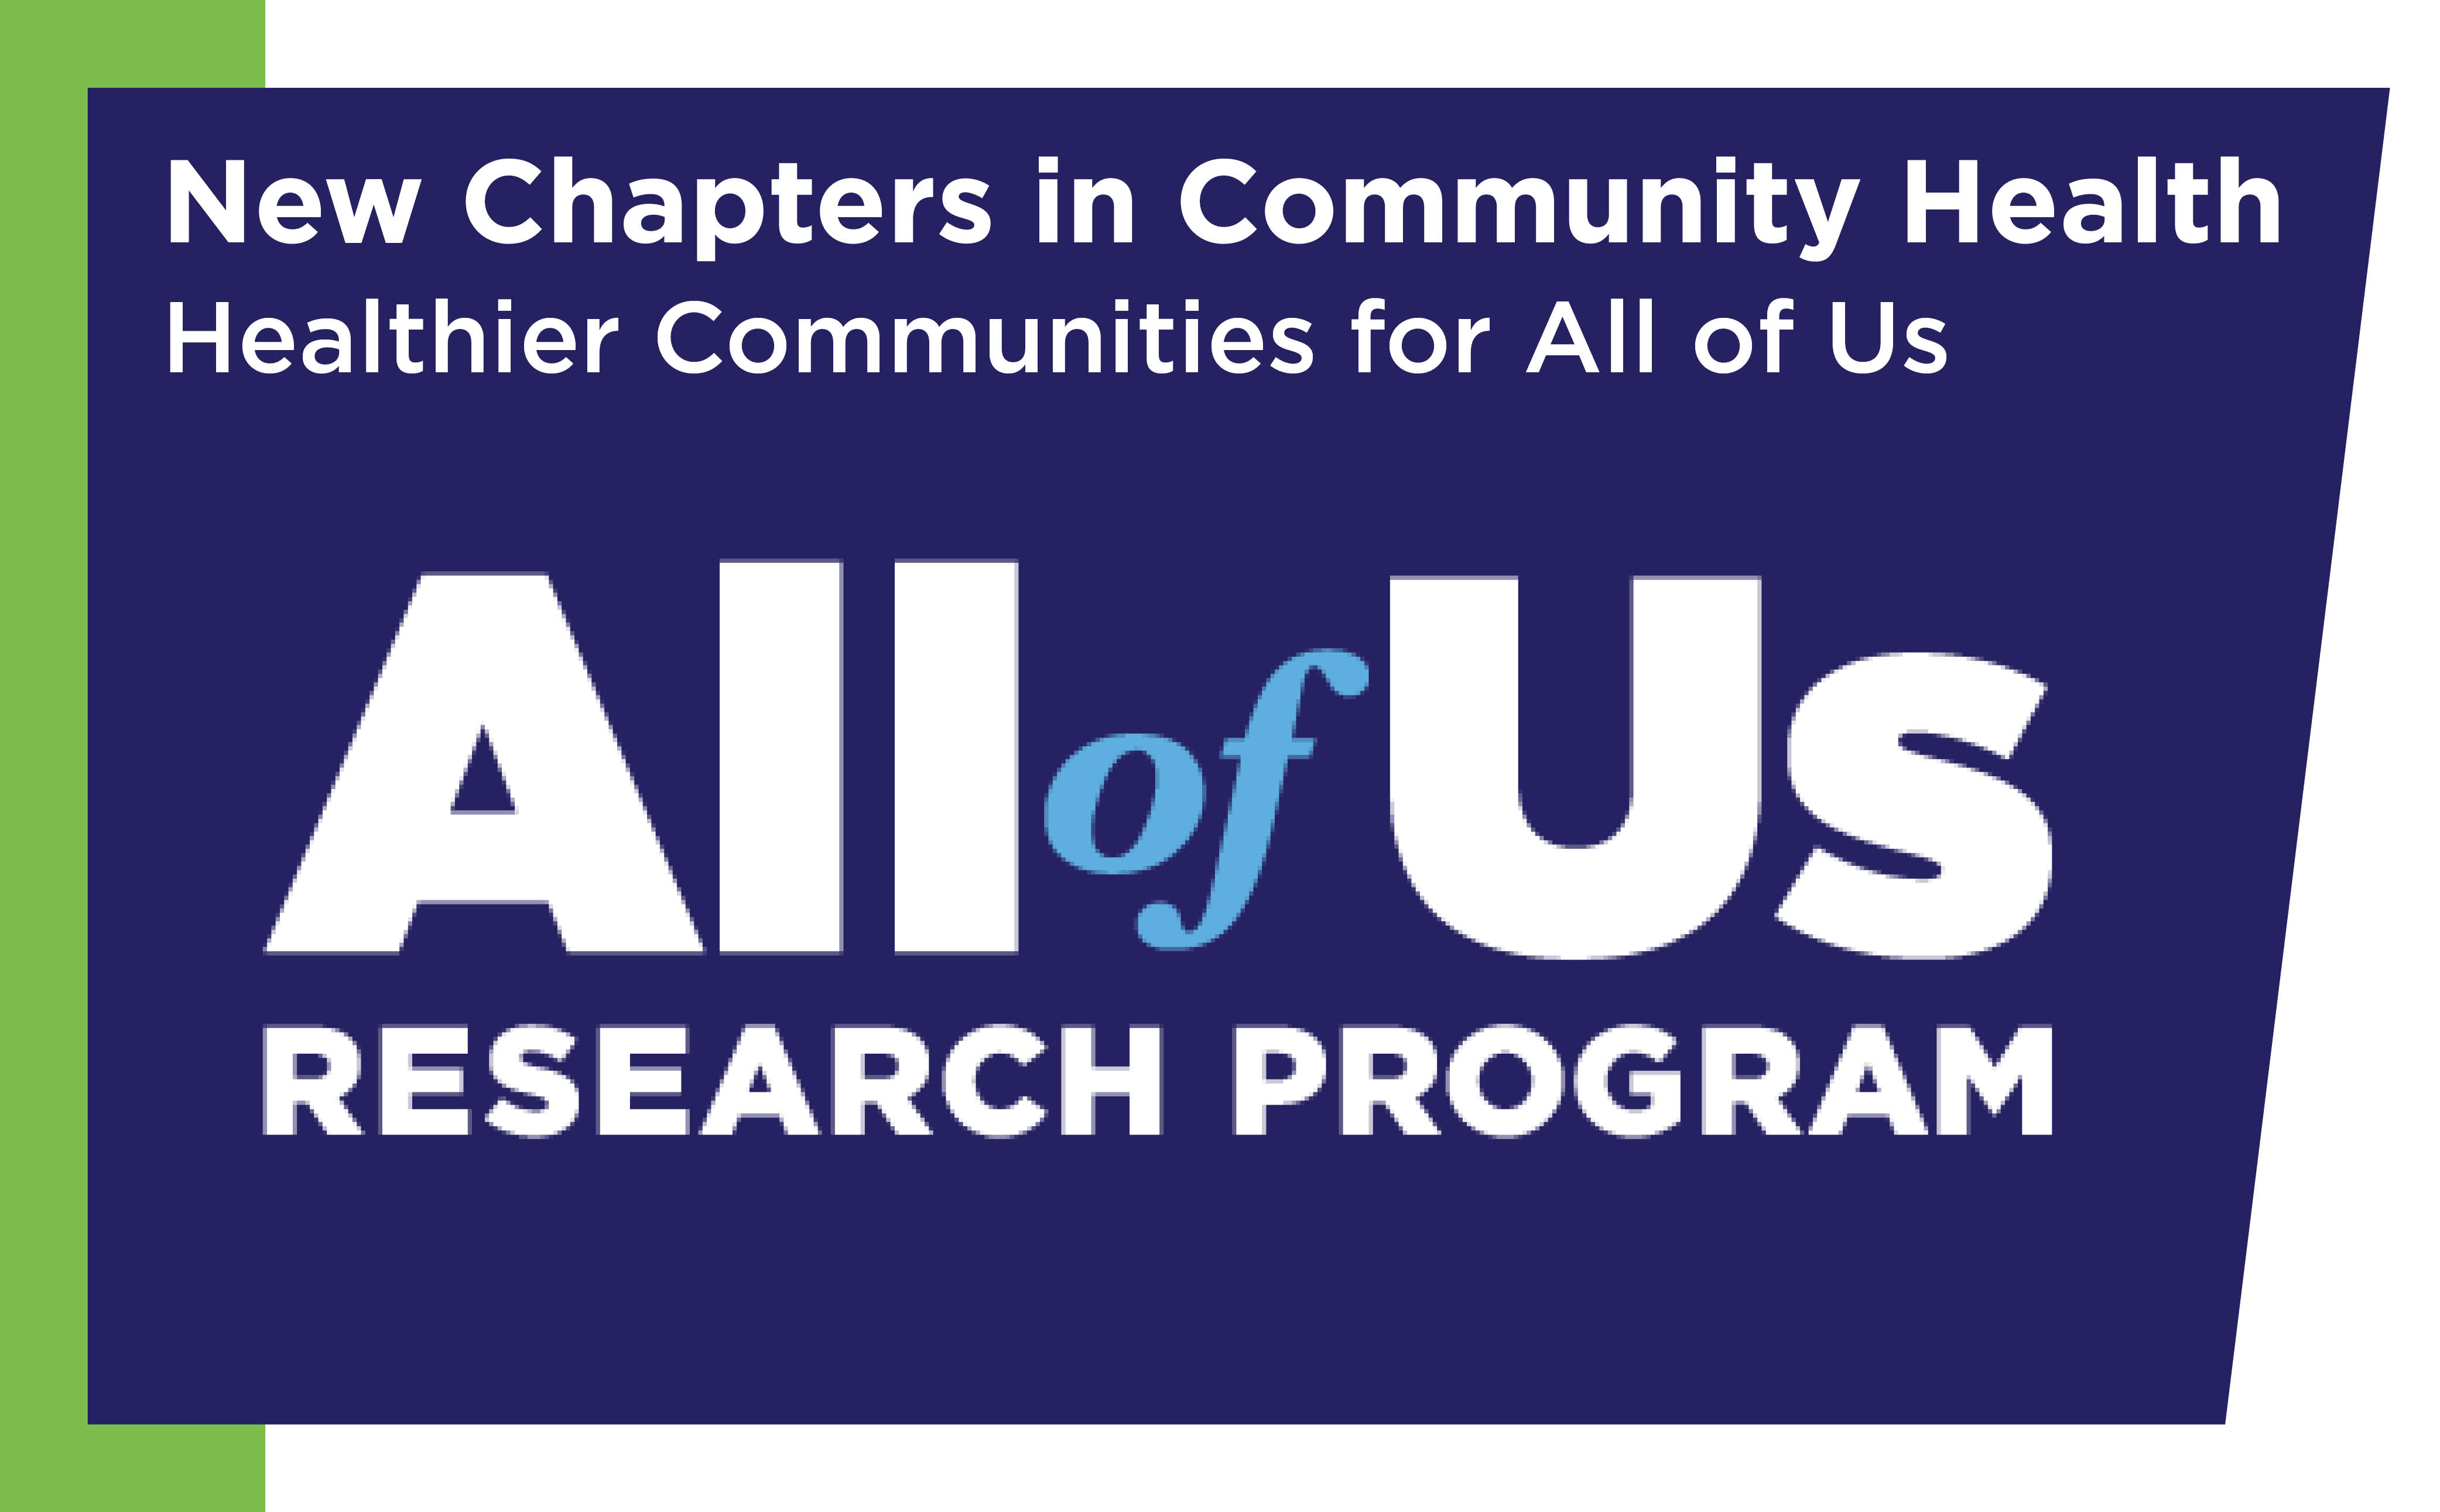 New Chapters in Community Health